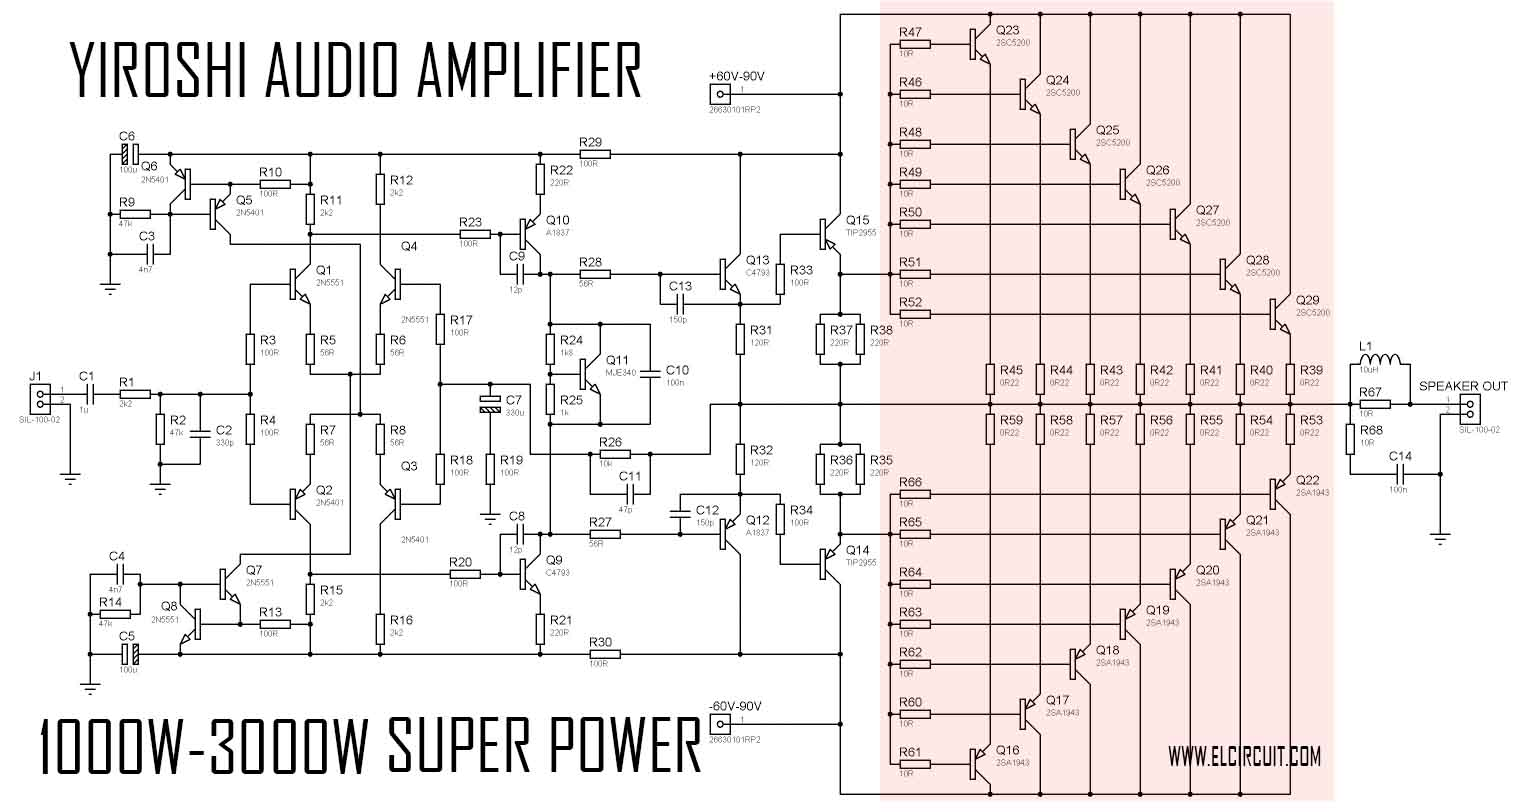 hight resolution of super power amplifier yiroshi audio 1000 watt electronic circuit 1000 watt audio amplifier circuit diagram pdf 1000 watt audio amplifier circuit diagrams